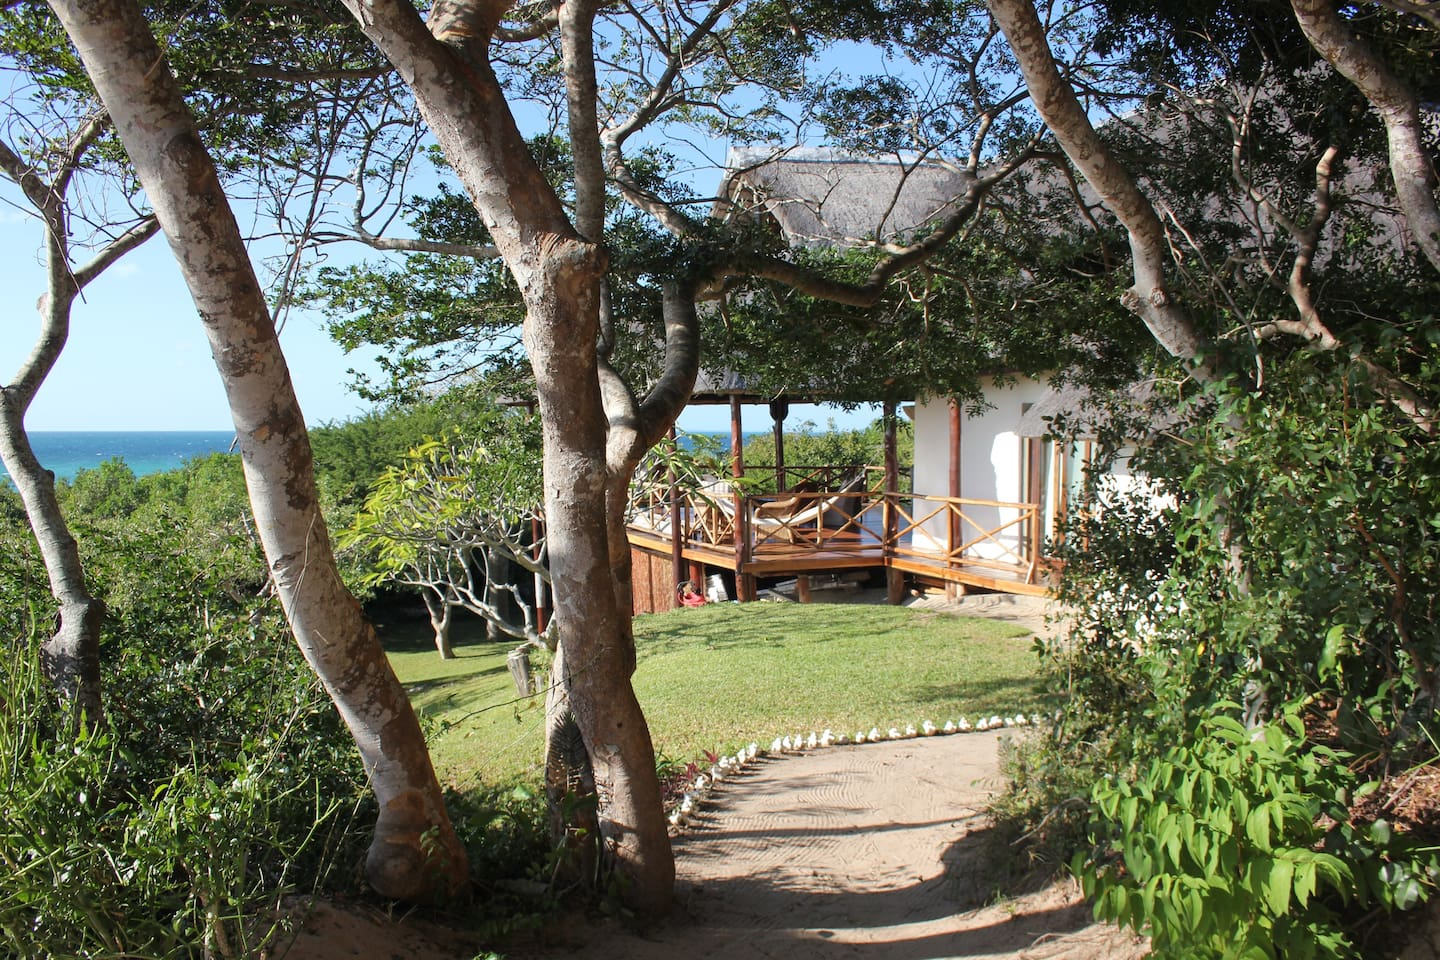 A much loved, laid back holiday rental on the Baia do Bazaruto in Vilanculos, Mozambique